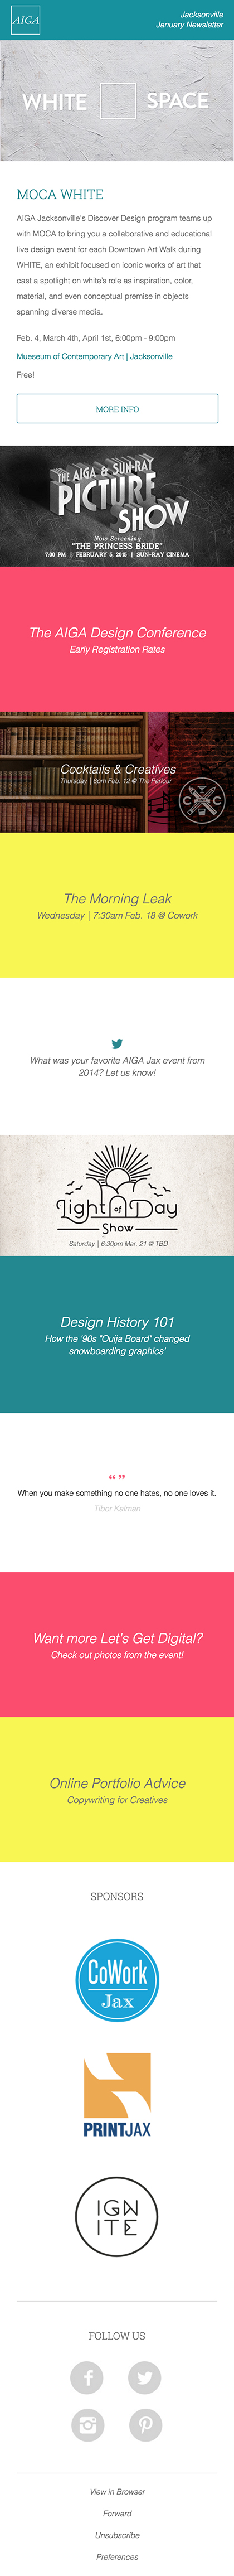 Aiga newsletter january 15 mobile